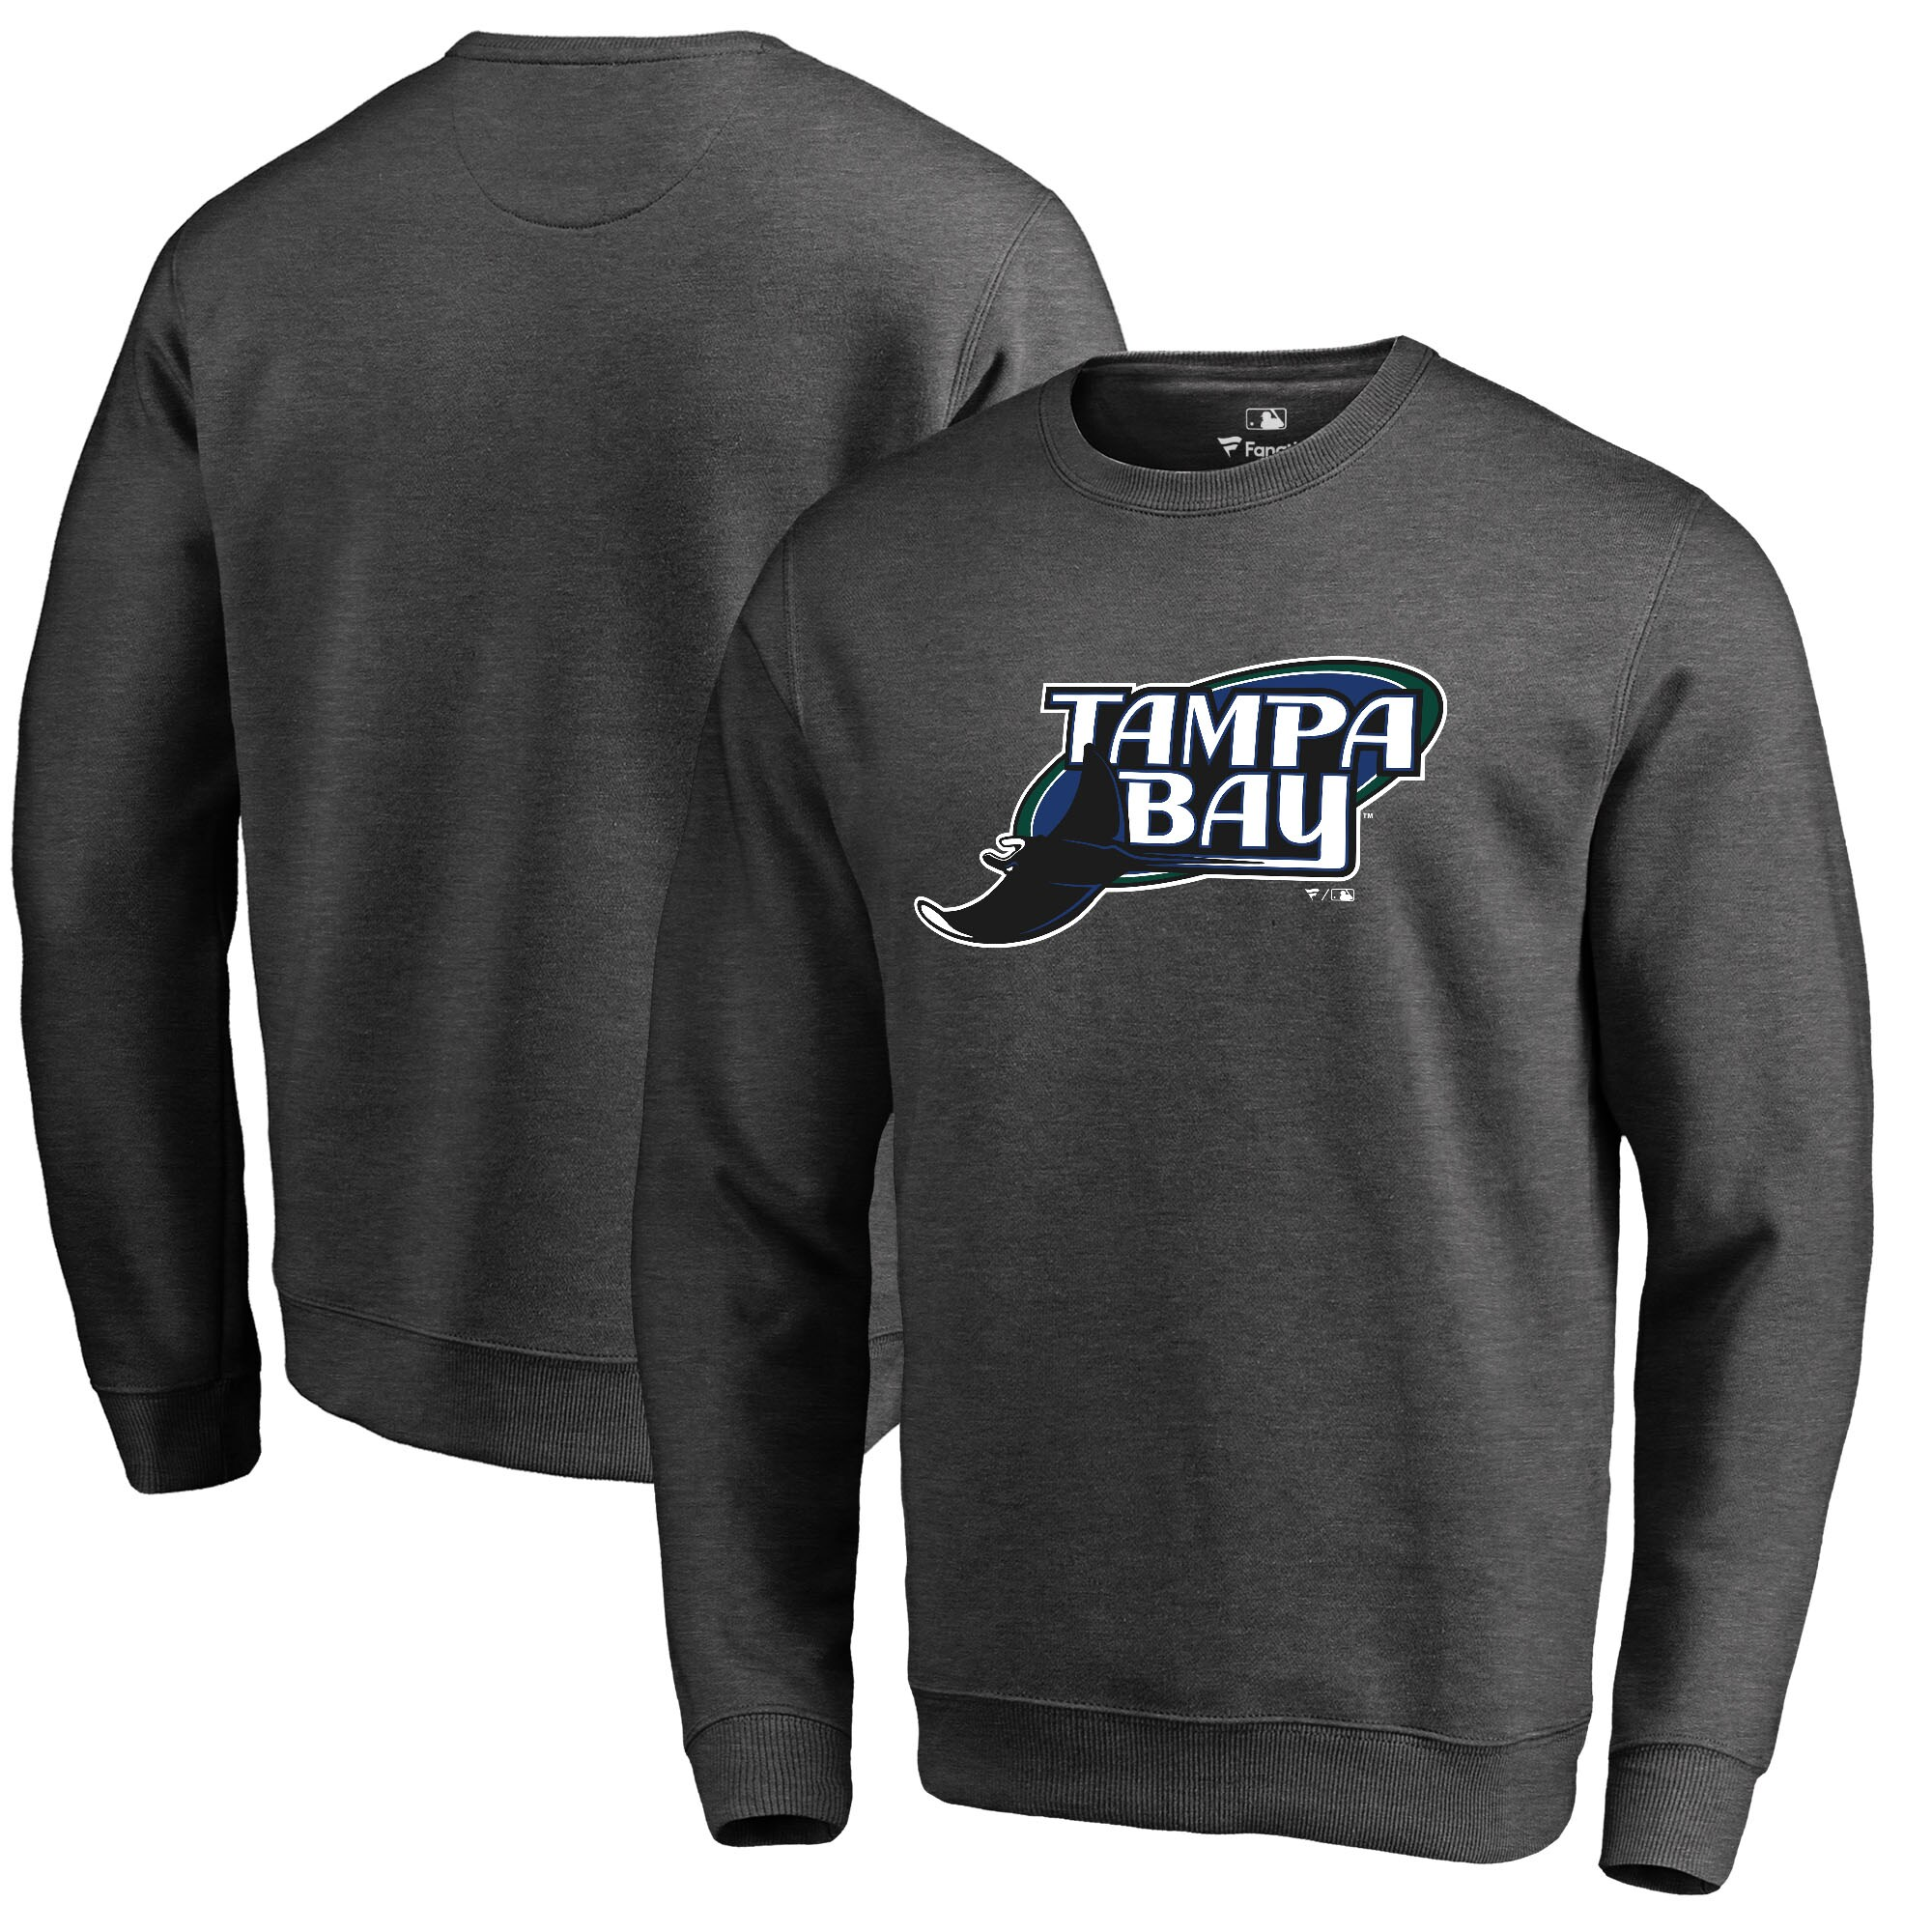 Tampa Bay Rays Fanatics Branded Cooperstown Collection Huntington Sweatshirt - Heathered Gray